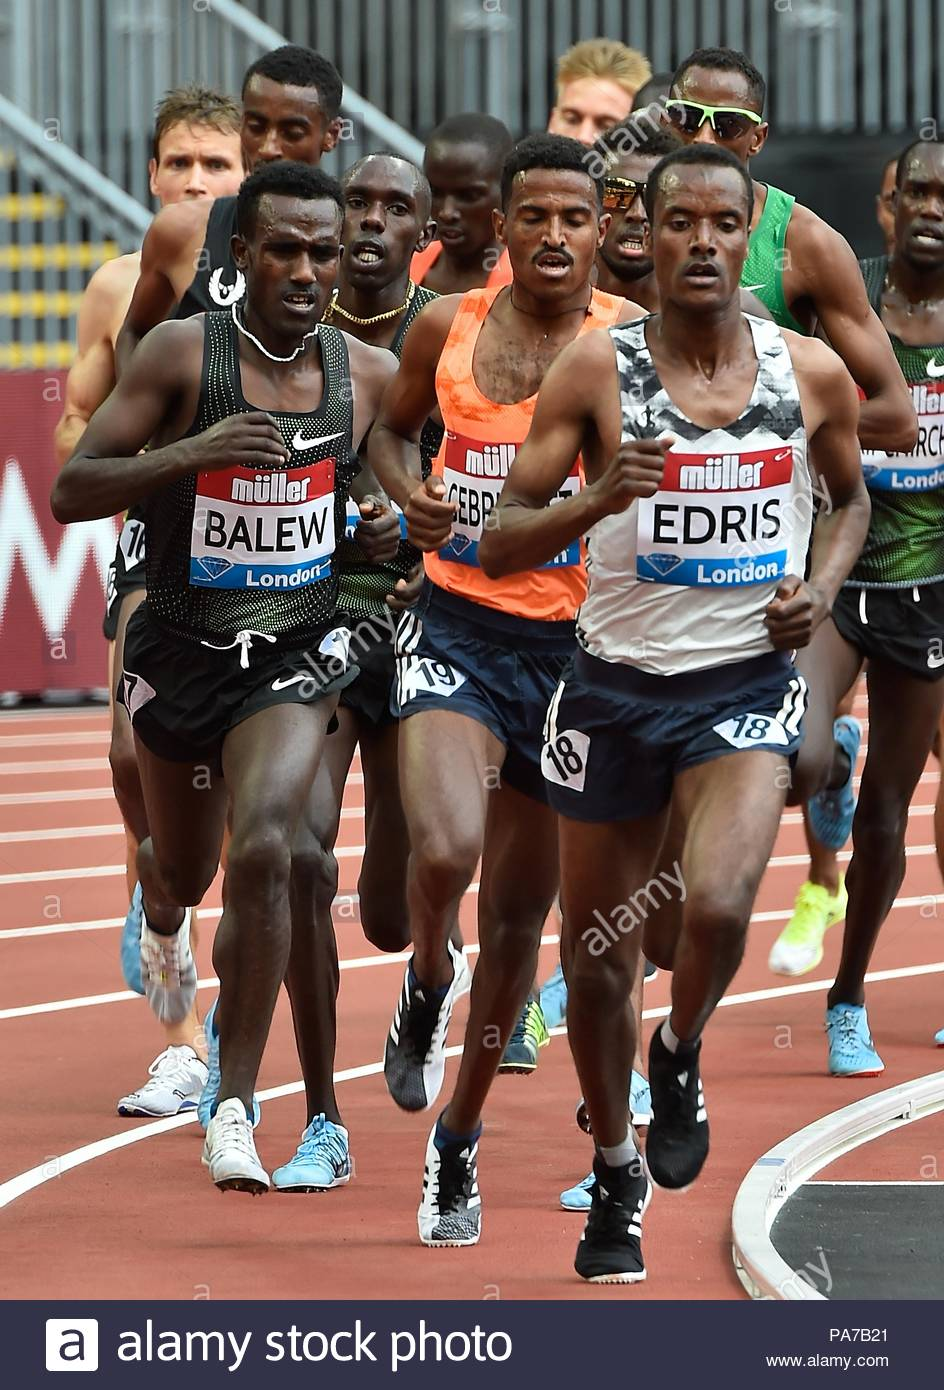 London, UK. 21st July 2018. 21.07.2018 IAAF Diamond League Muller Anniversary Games Queen Elizabeth Olympic Park London UK Mens 5000m lead by Muktar Edris ETH who went on to win the race. Credit: Leo Mason sports photos/Alamy Live News - Stock Image